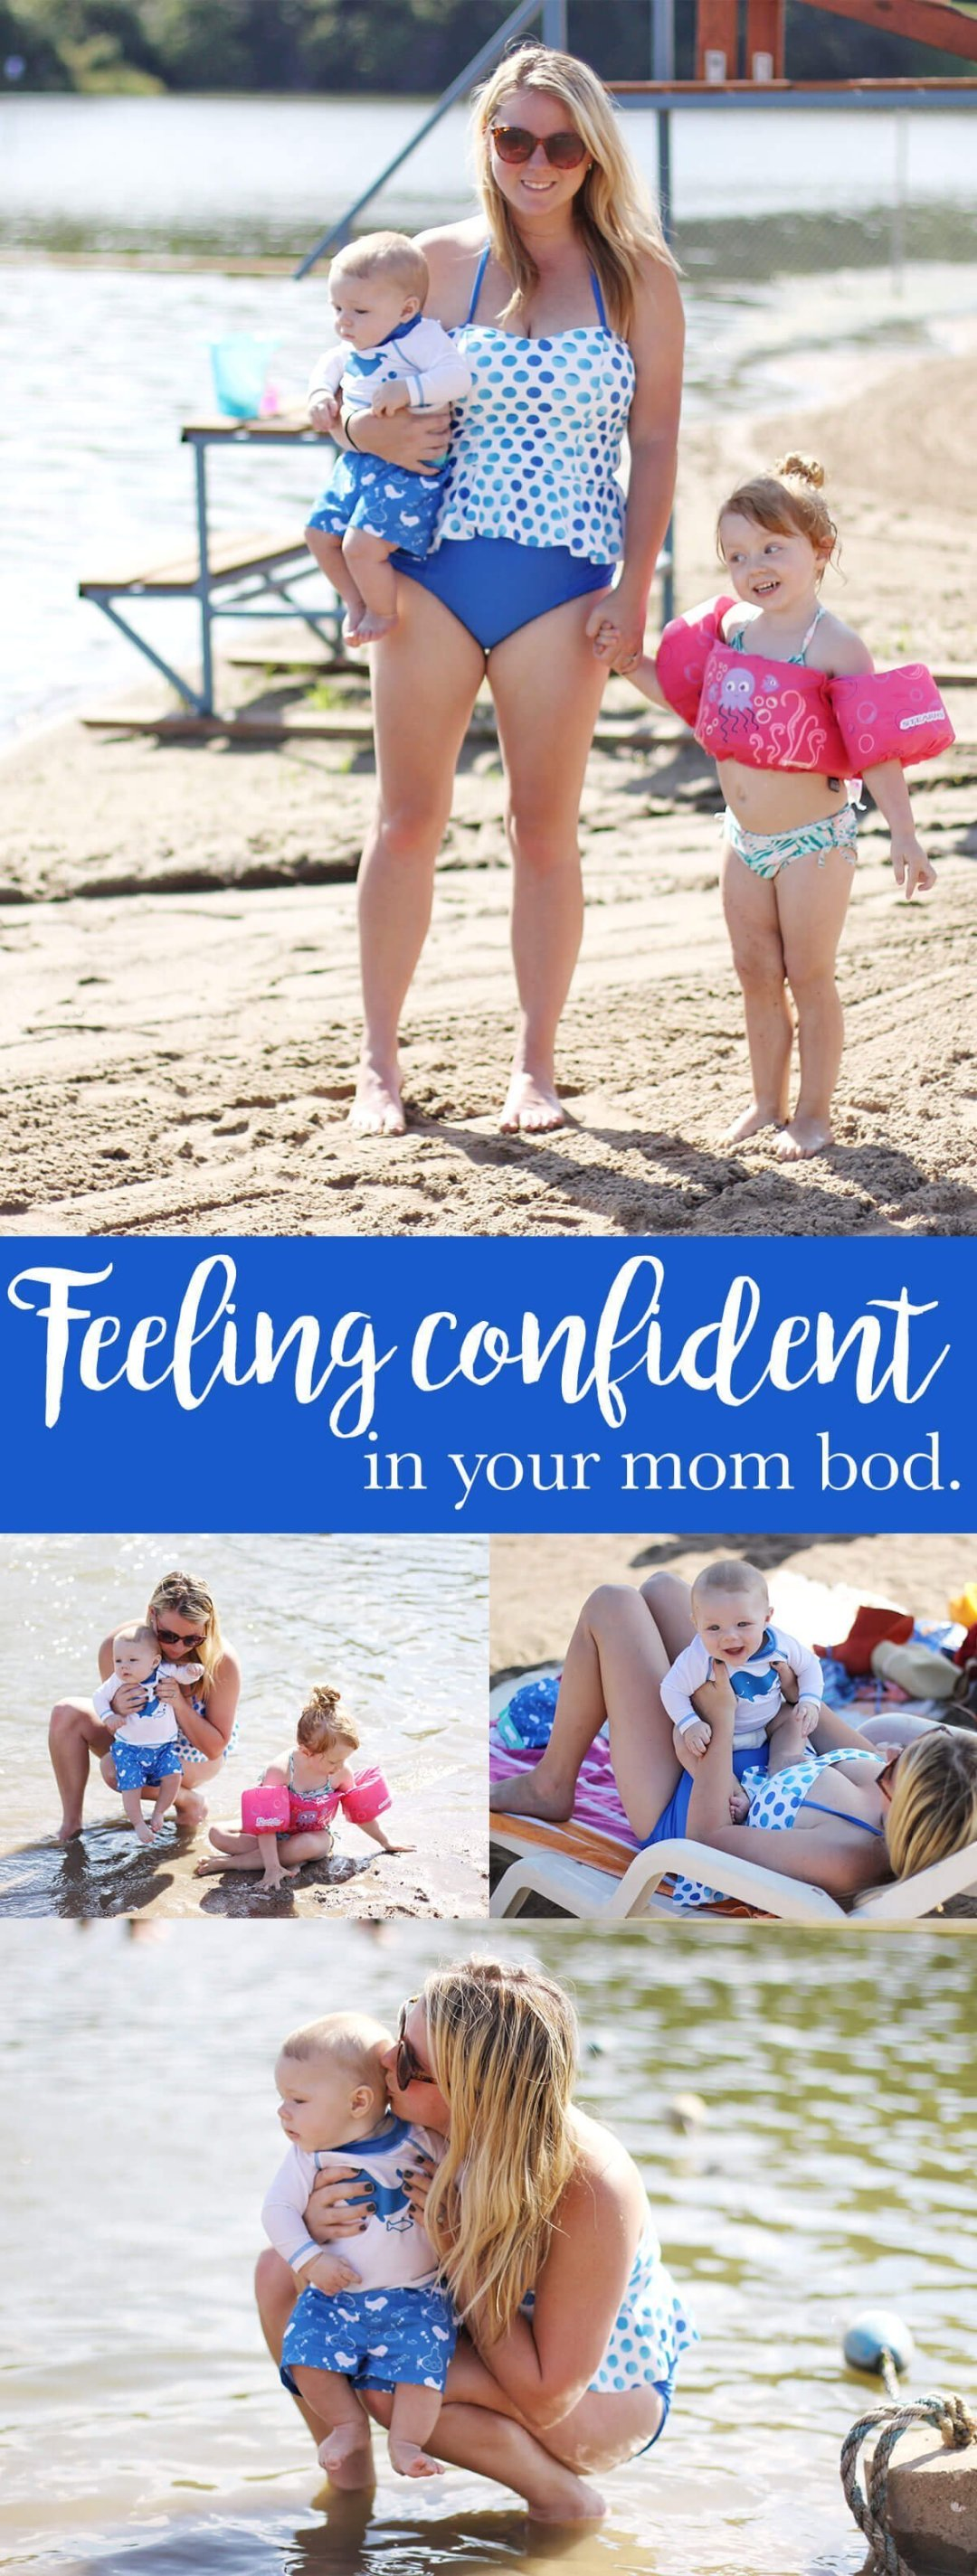 Feeling Confident in Your Mom Bod | Shopaholic & a Baby Blog